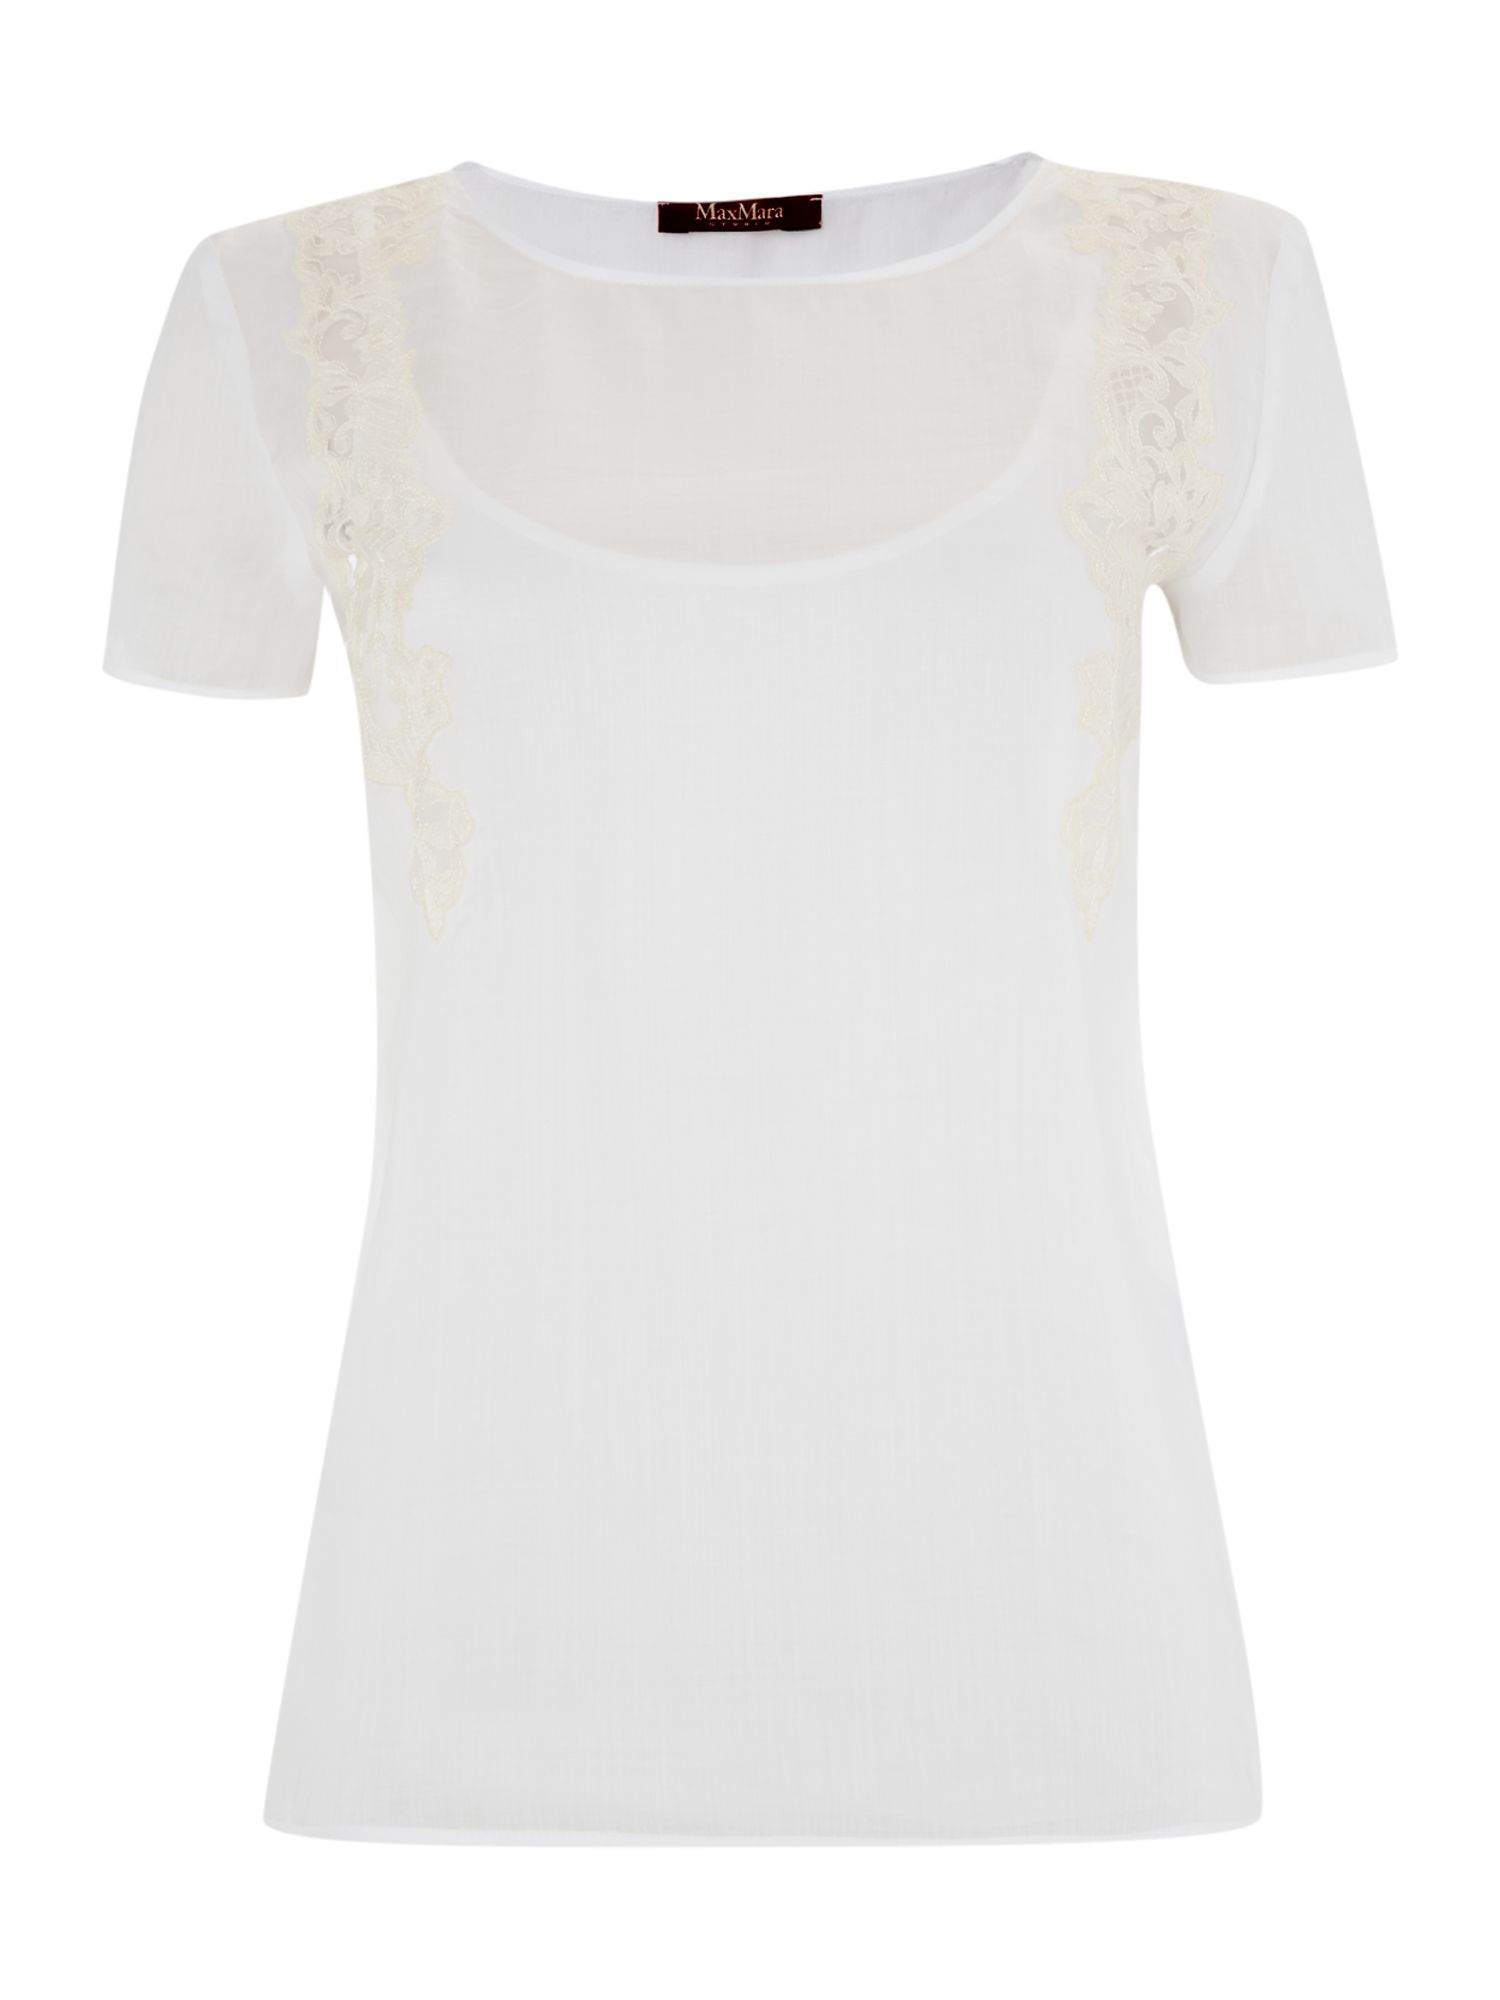 Plata lace detail top